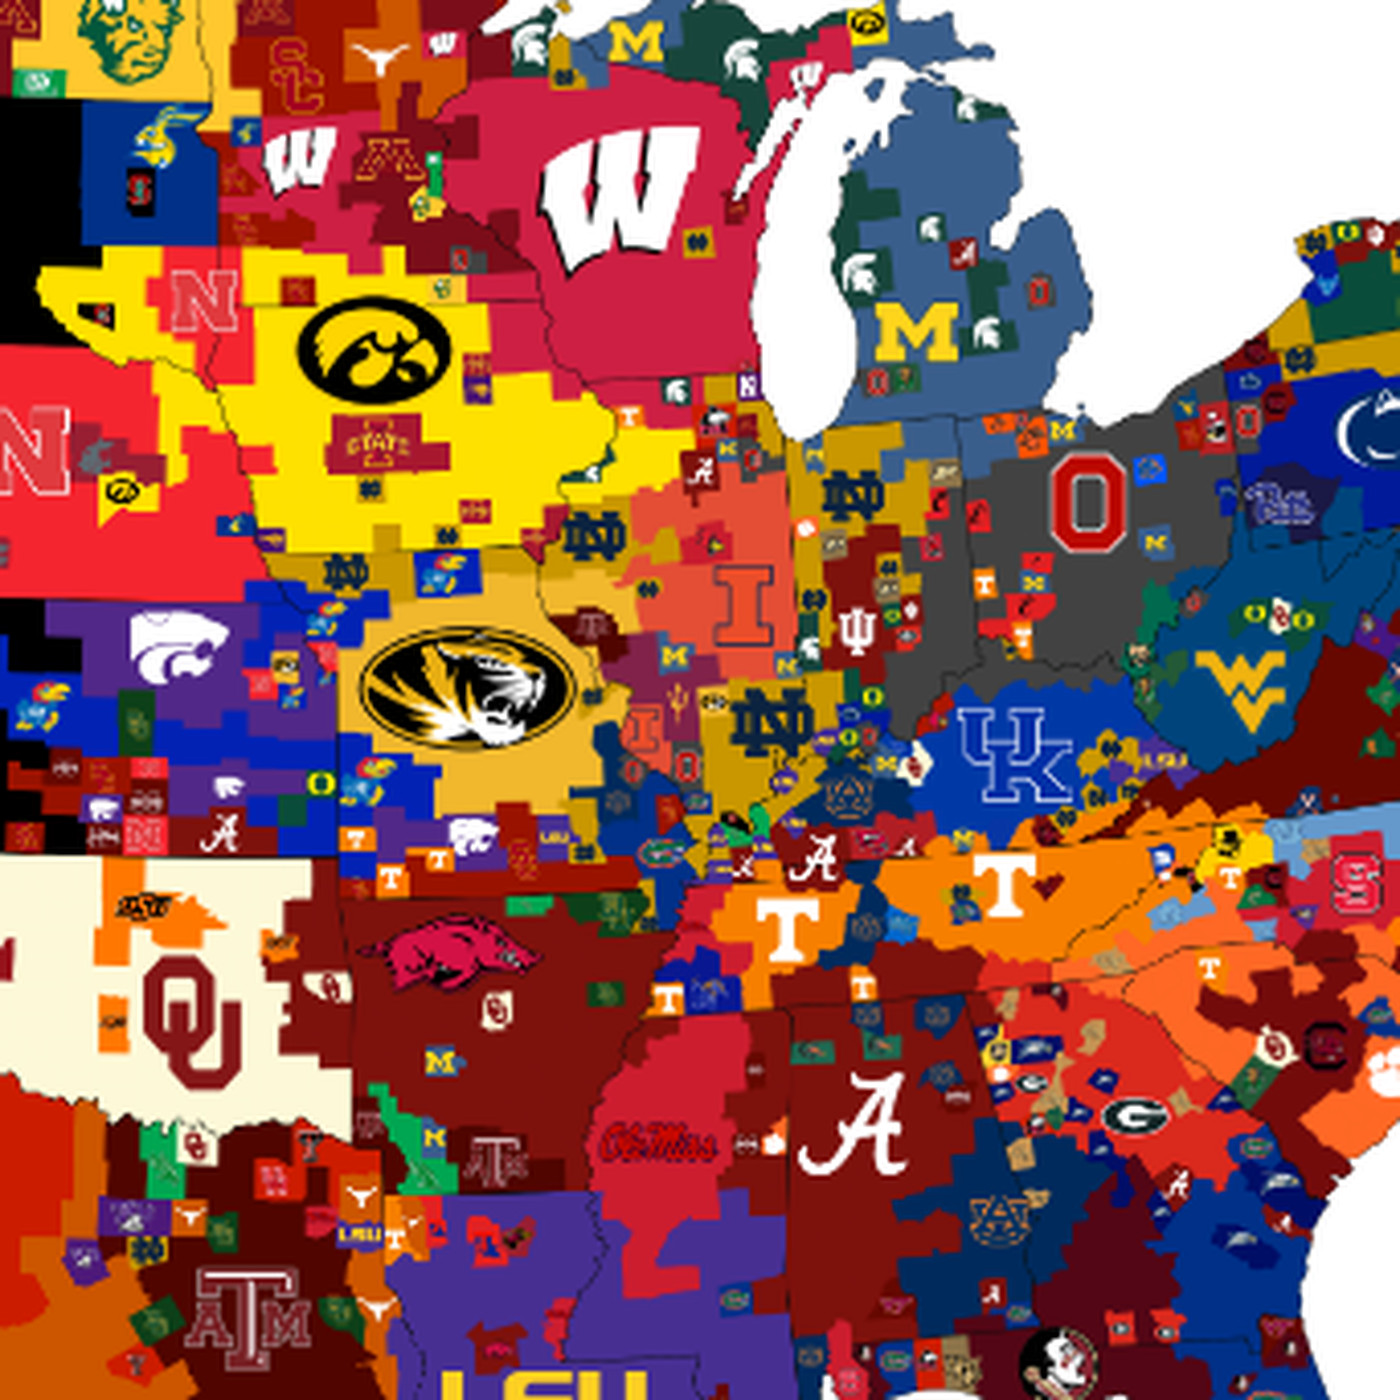 3 different maps that show the most popular college football teams across america sbnationcom